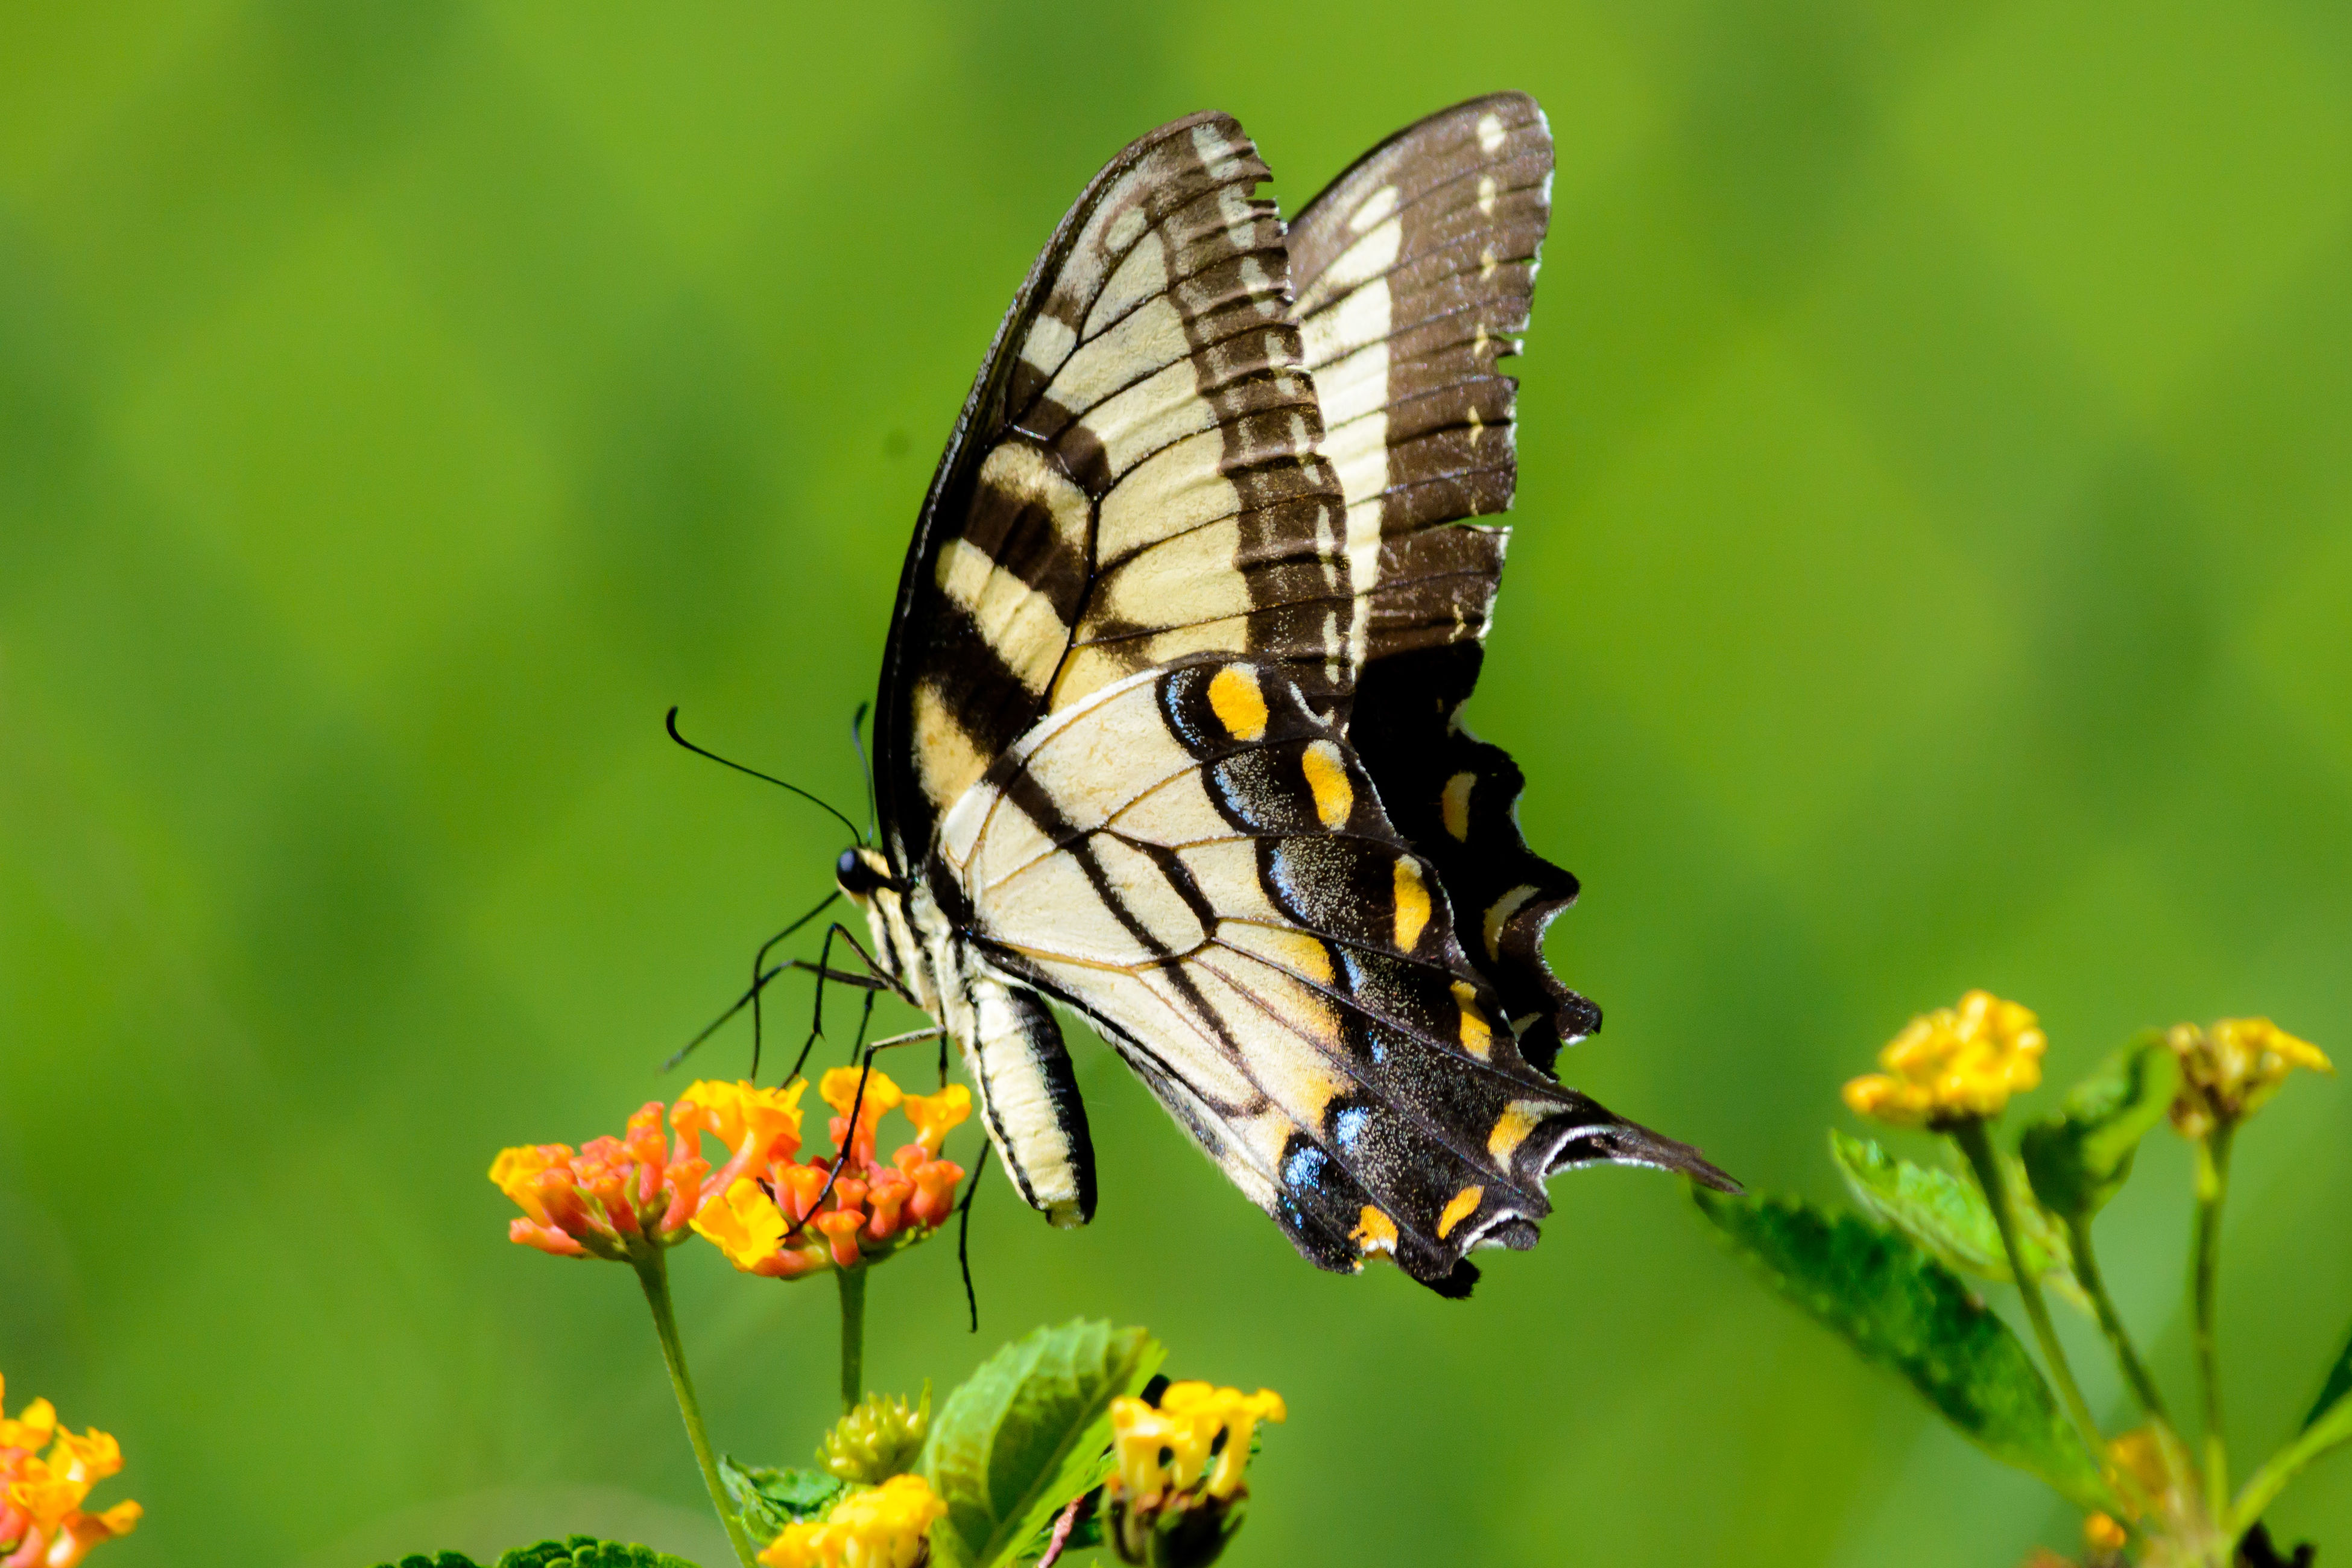 insect, one animal, animals in the wild, animal themes, wildlife, butterfly - insect, butterfly, focus on foreground, flower, close-up, fragility, plant, animal wing, beauty in nature, nature, perching, animal markings, day, outdoors, leaf